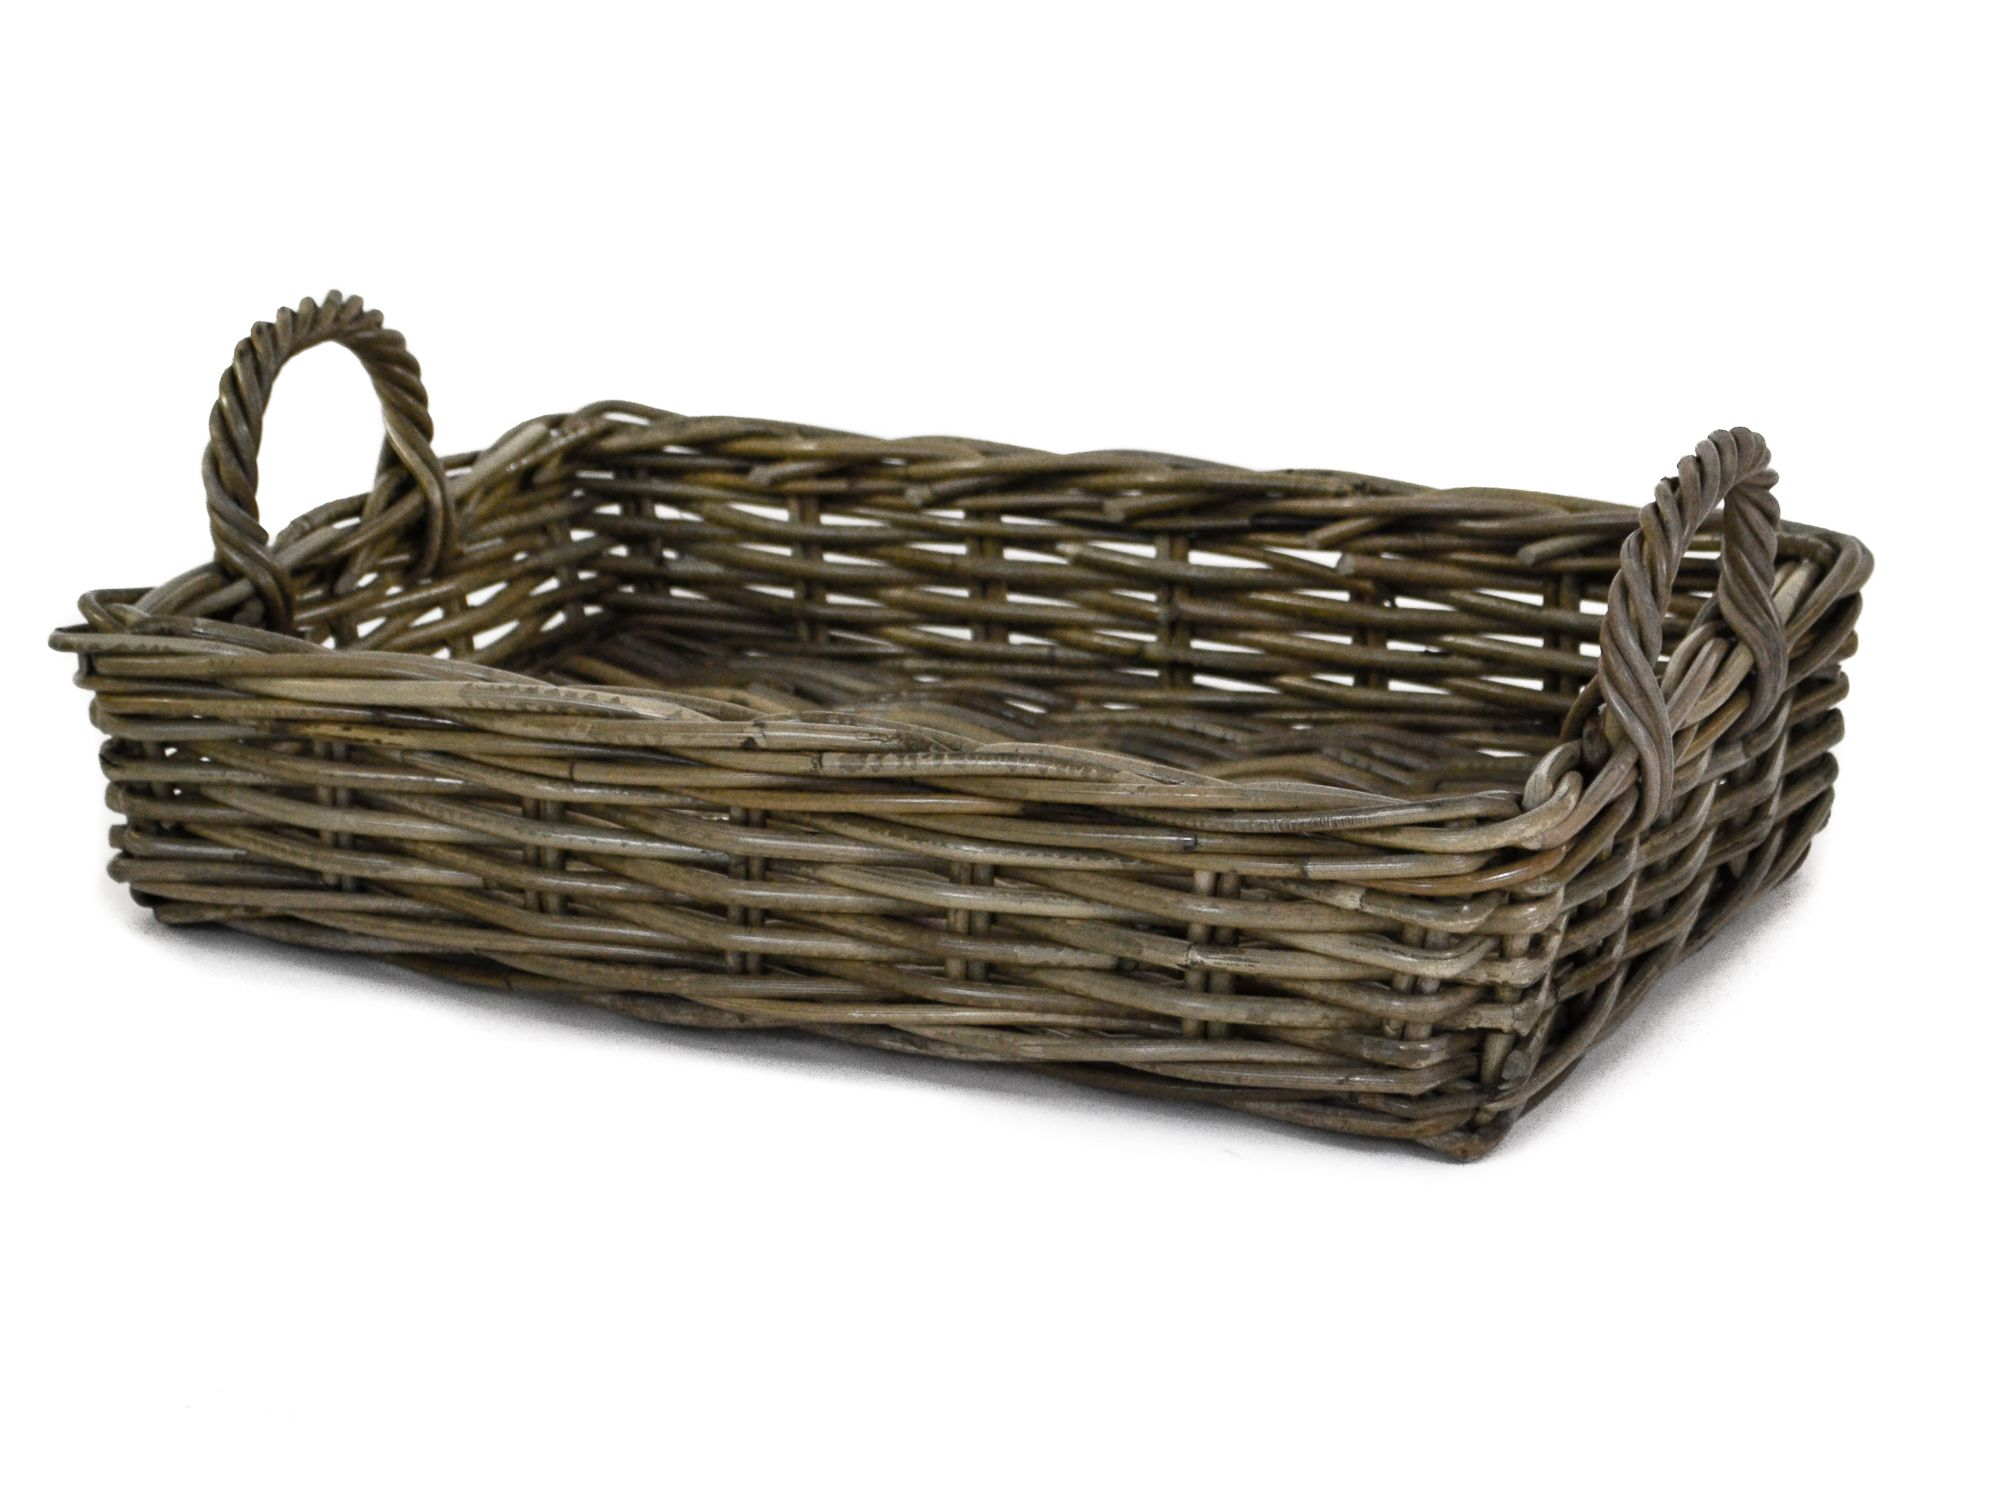 Home underbed storage baskets wicker underbed storage basket - Giant Grey Buff Kabu Kubu Rattan Wicker Rectangle Storage Log Basket With Jute Liner